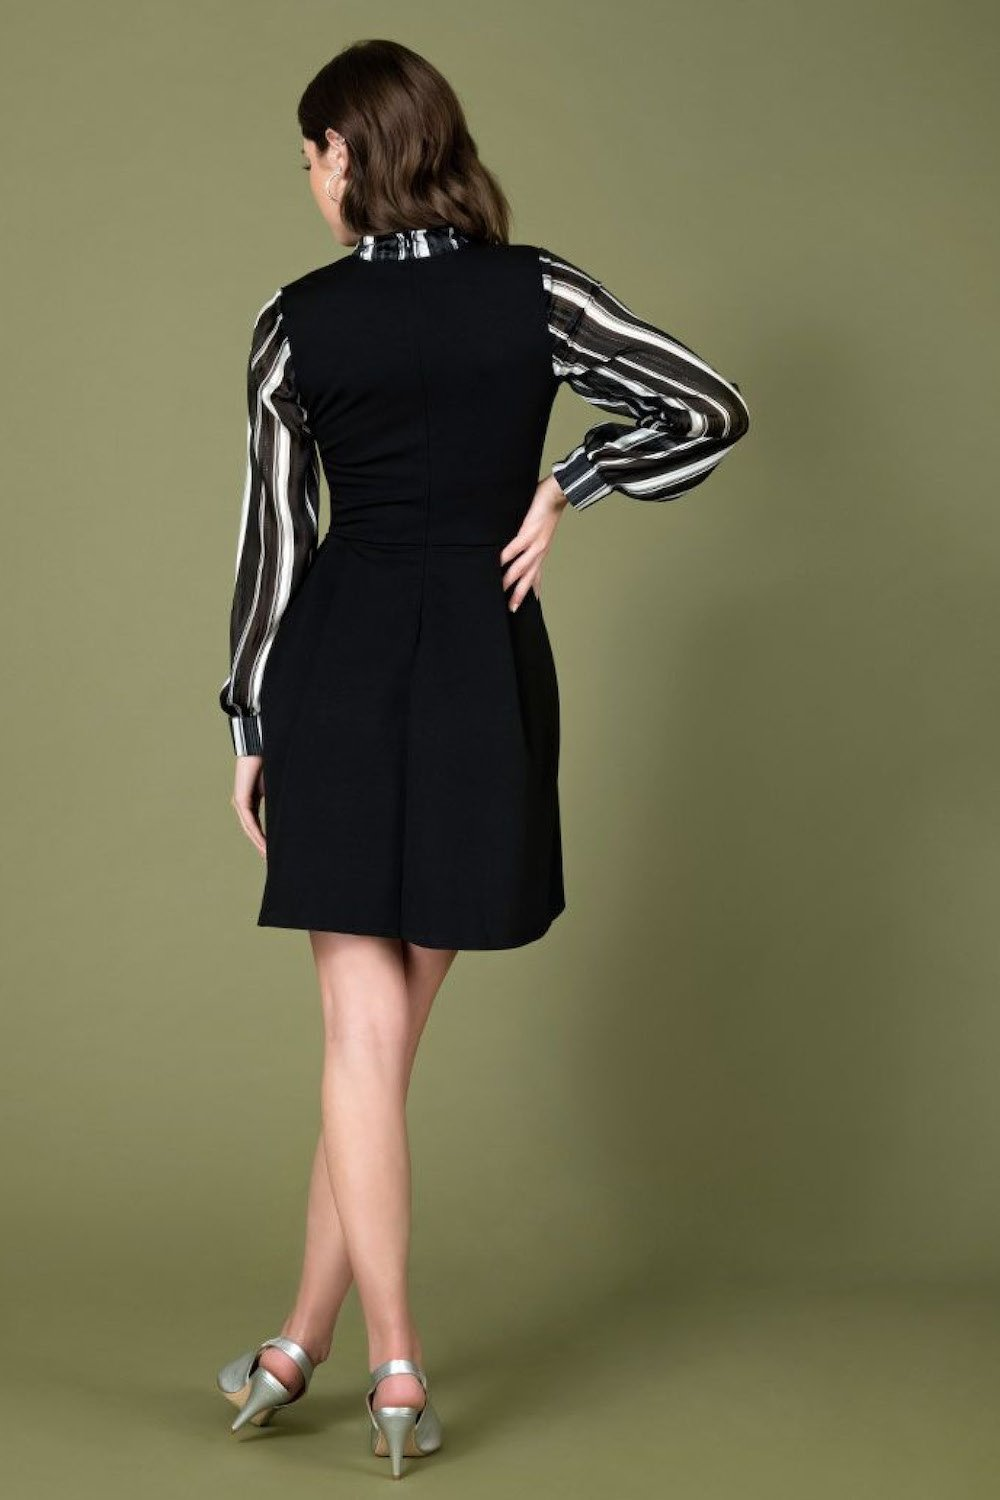 Black & Ivory Stripe Chiffon Sleeve She .E.O. Fit & Flare Dress by Smak Parlour